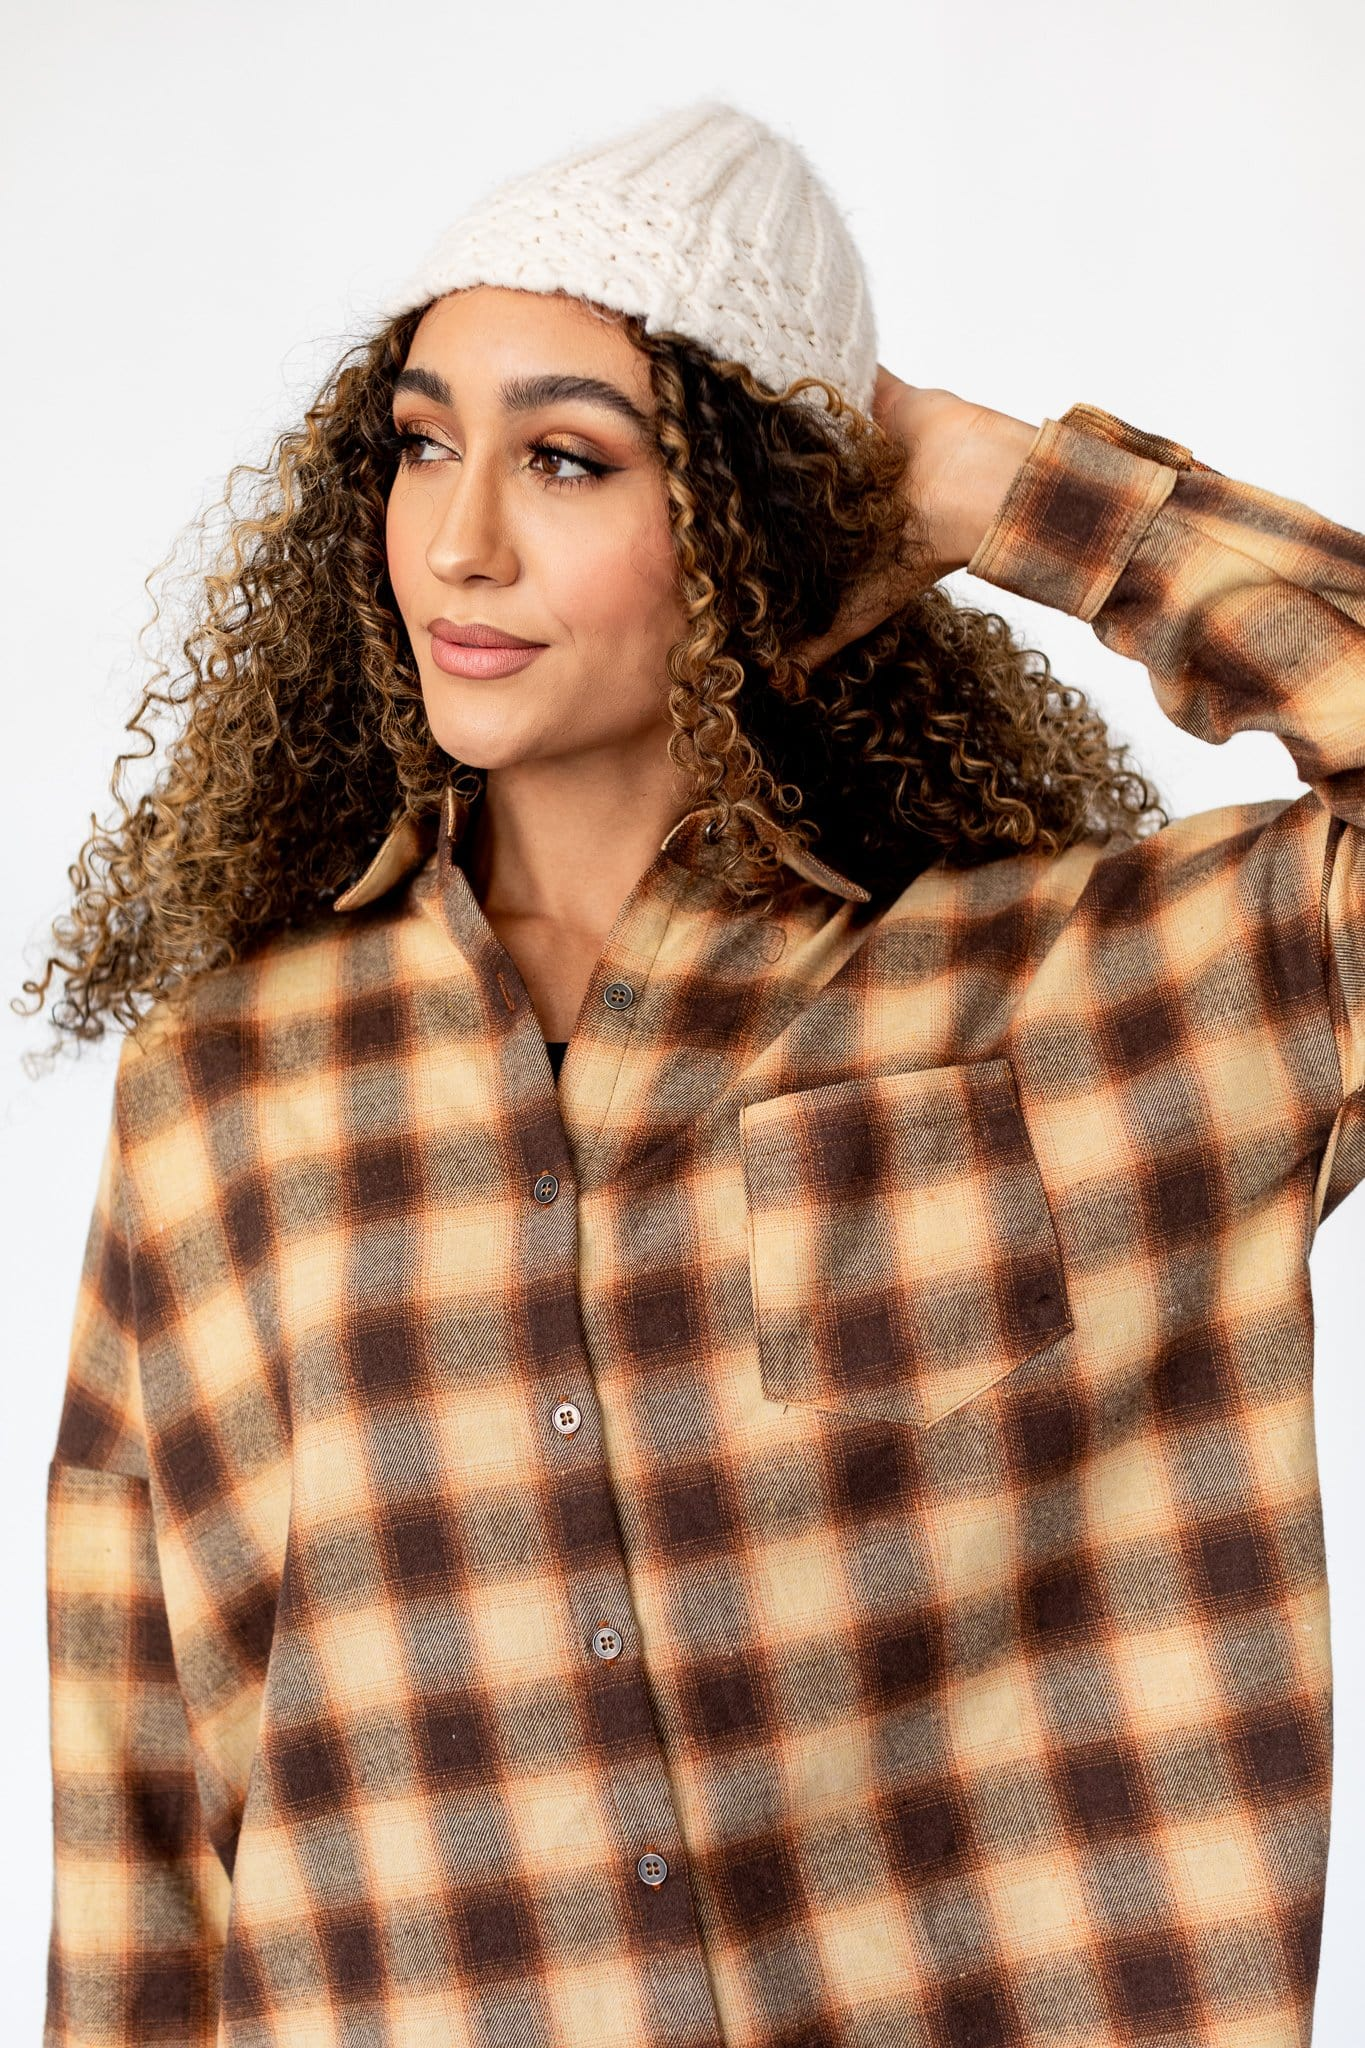 The Salina Plaid Button Down Top in Mocha